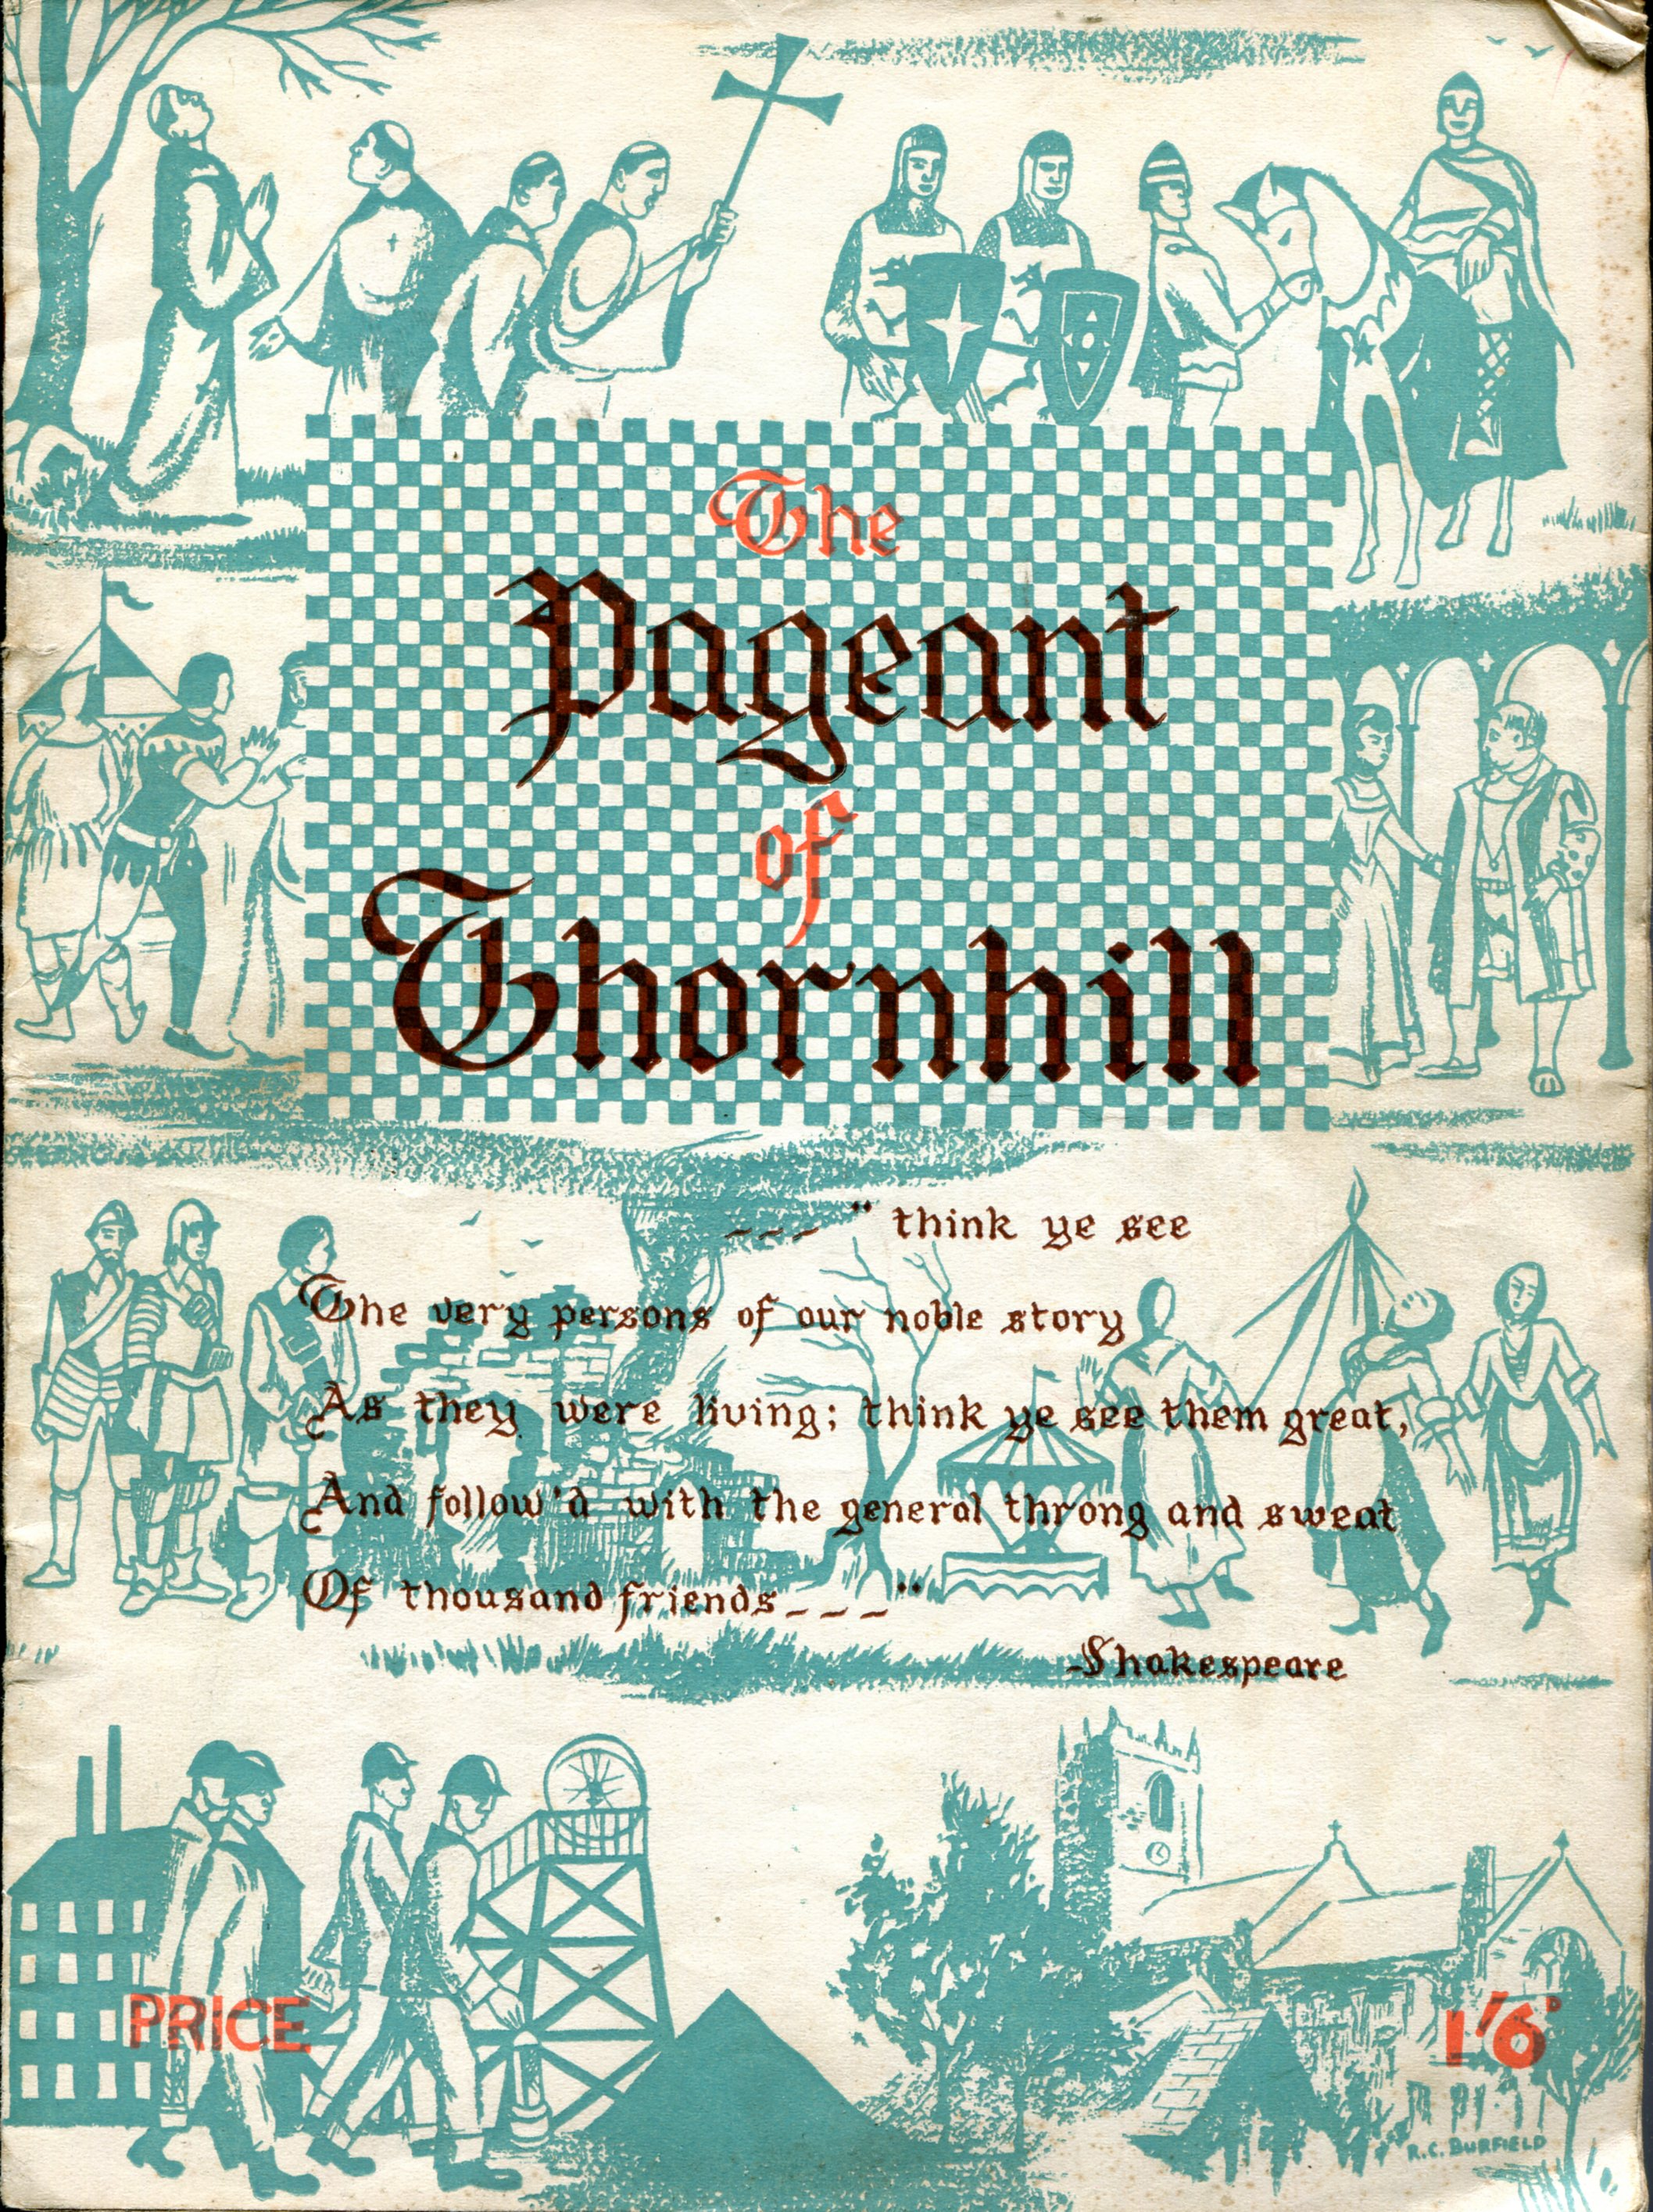 Pageant of Thornhill 127